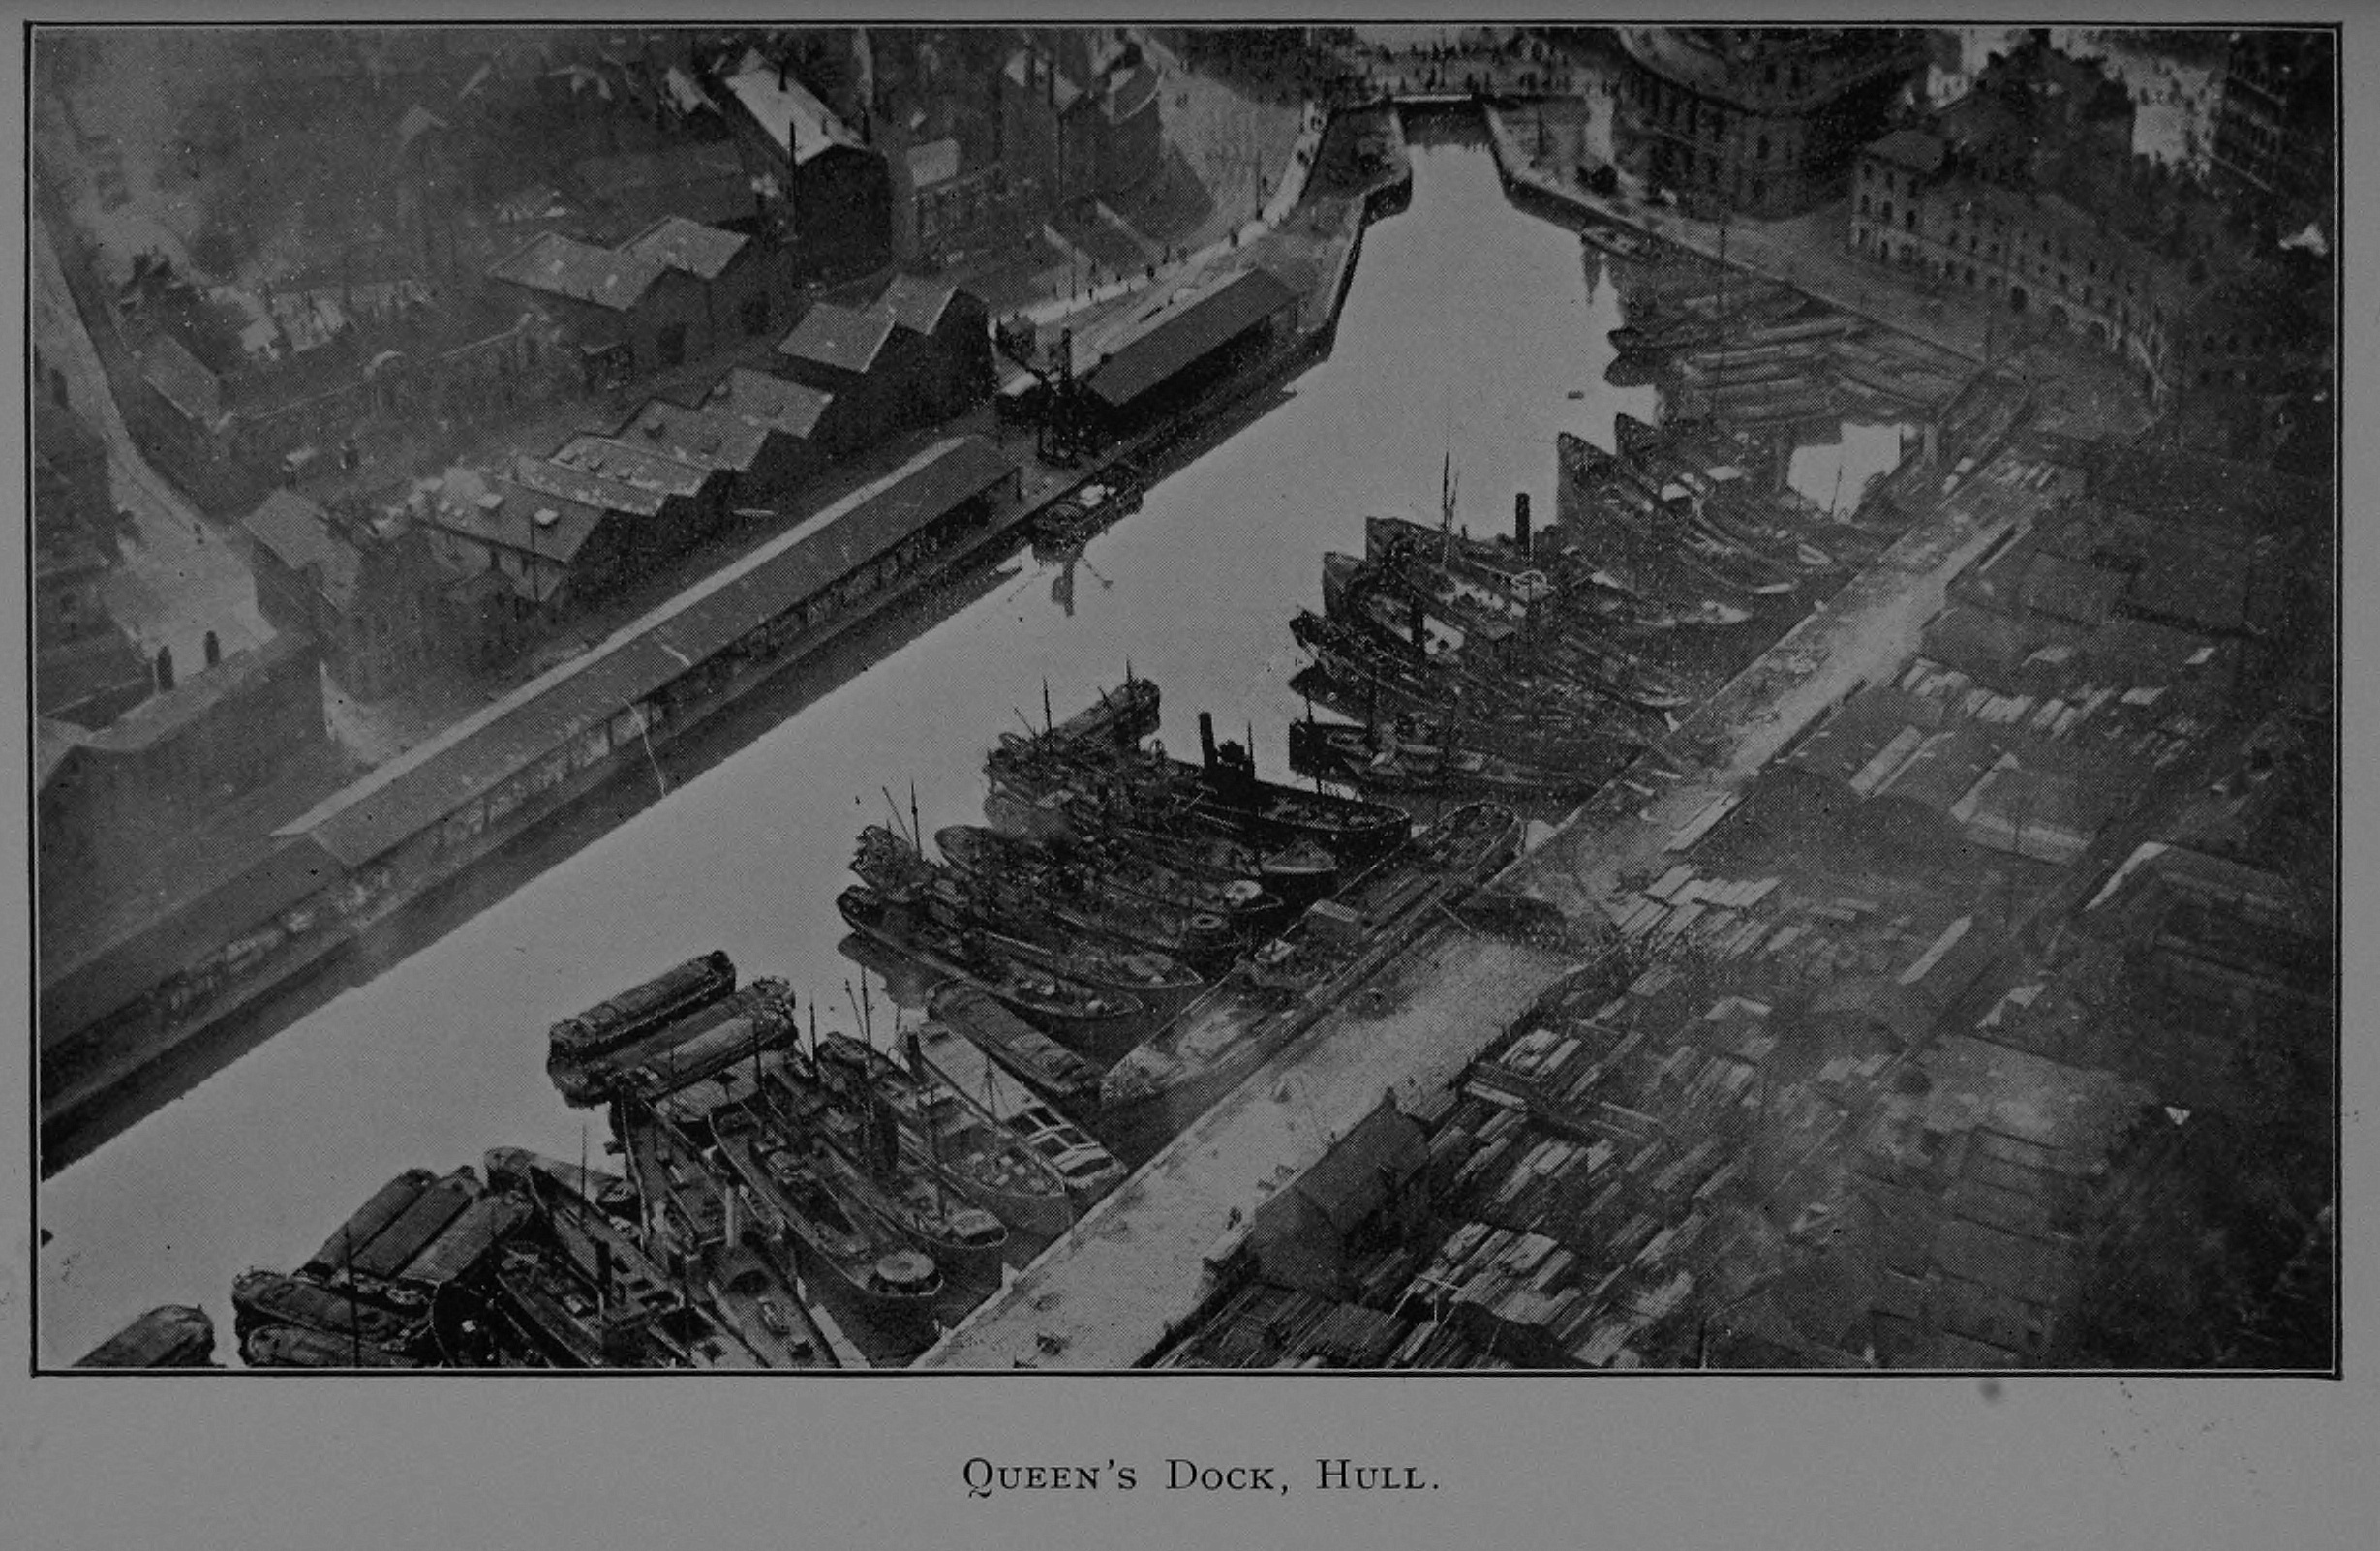 FileQueens Dock Hulljpg Wikimedia Commons